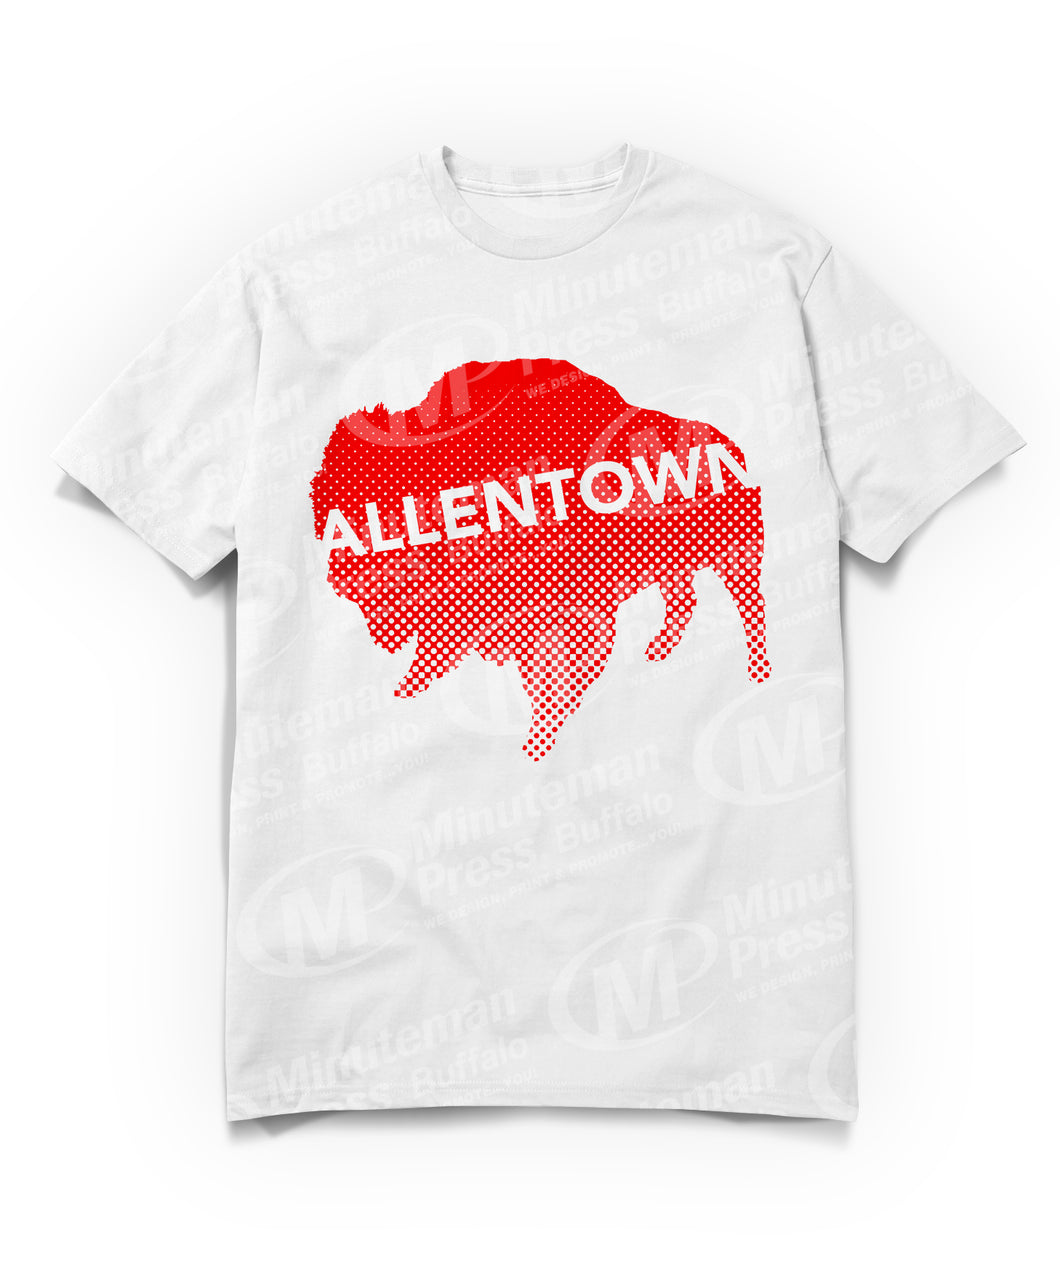 Allentown on red Buffalo/Bison T-shirt